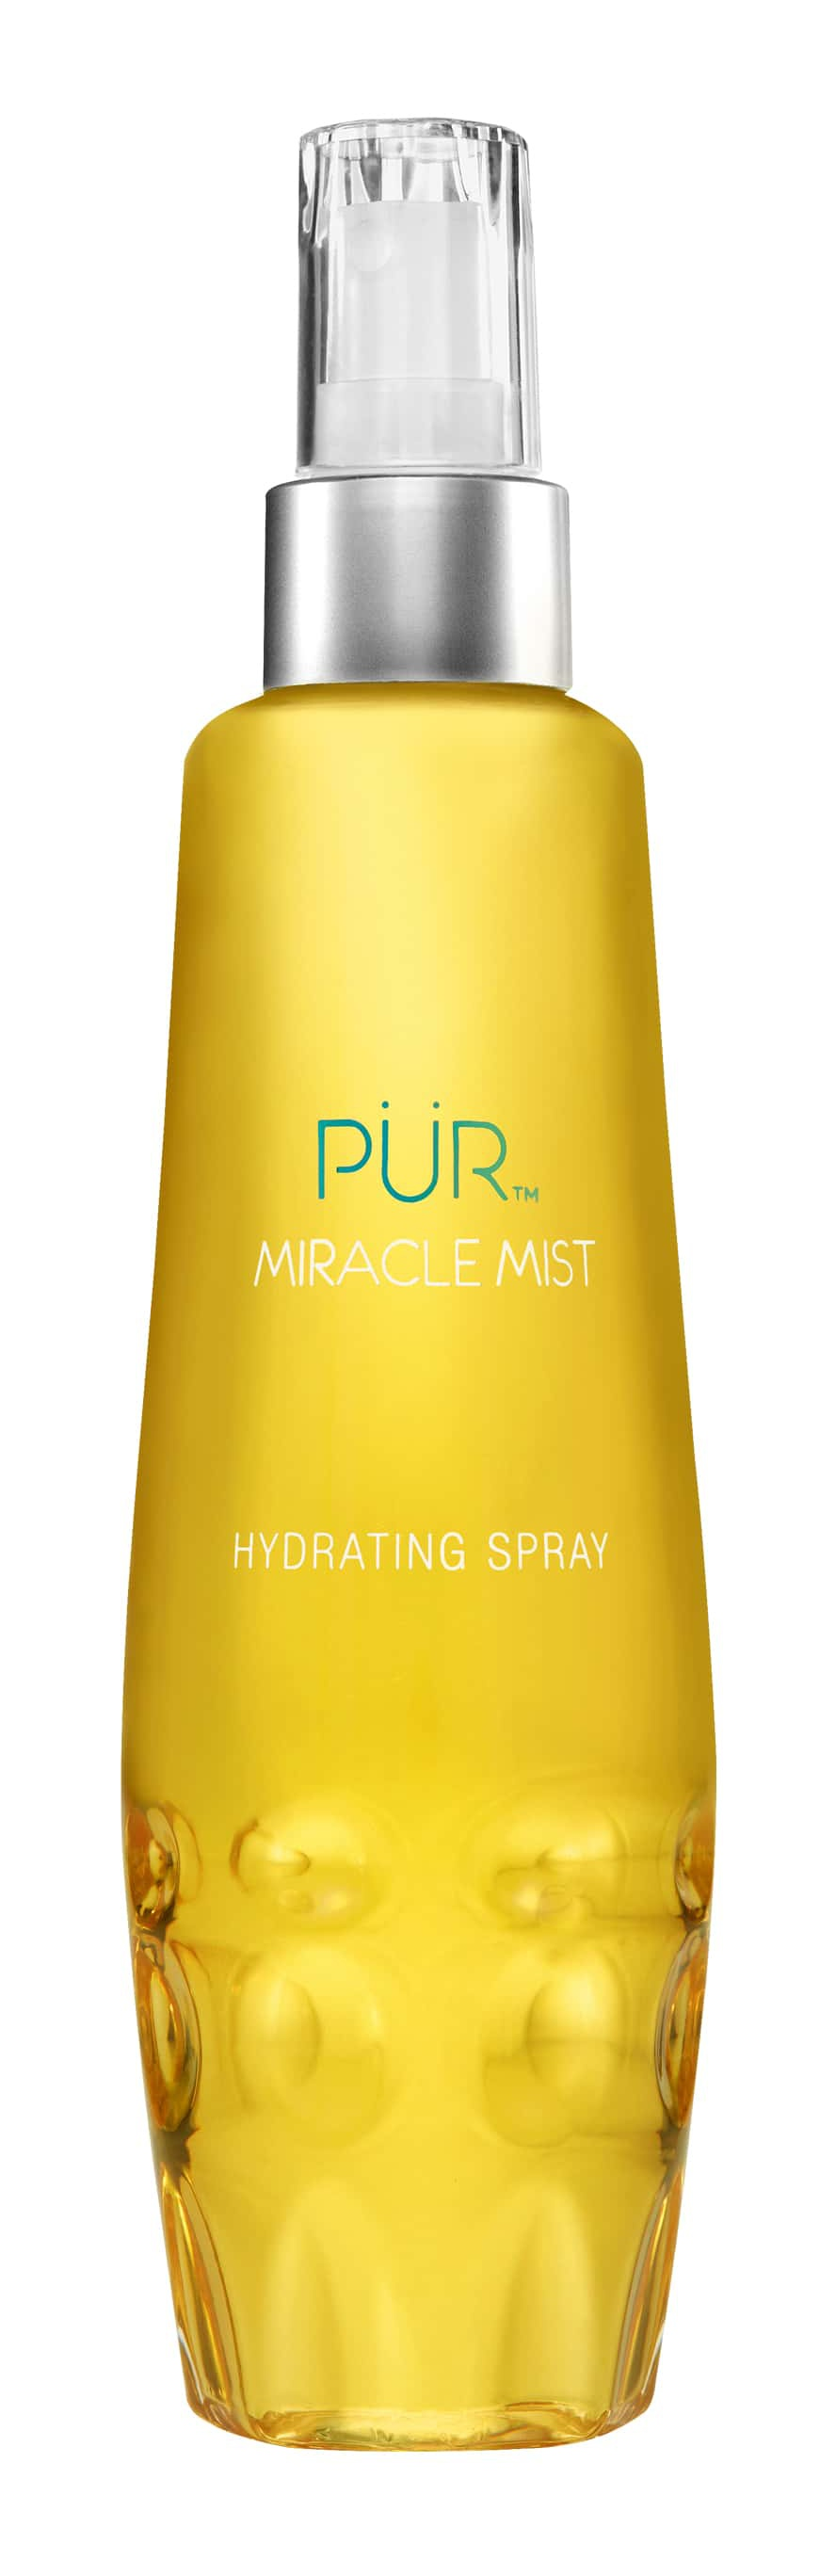 The PÜRE Collection Miracle Mist Hydrating Spray